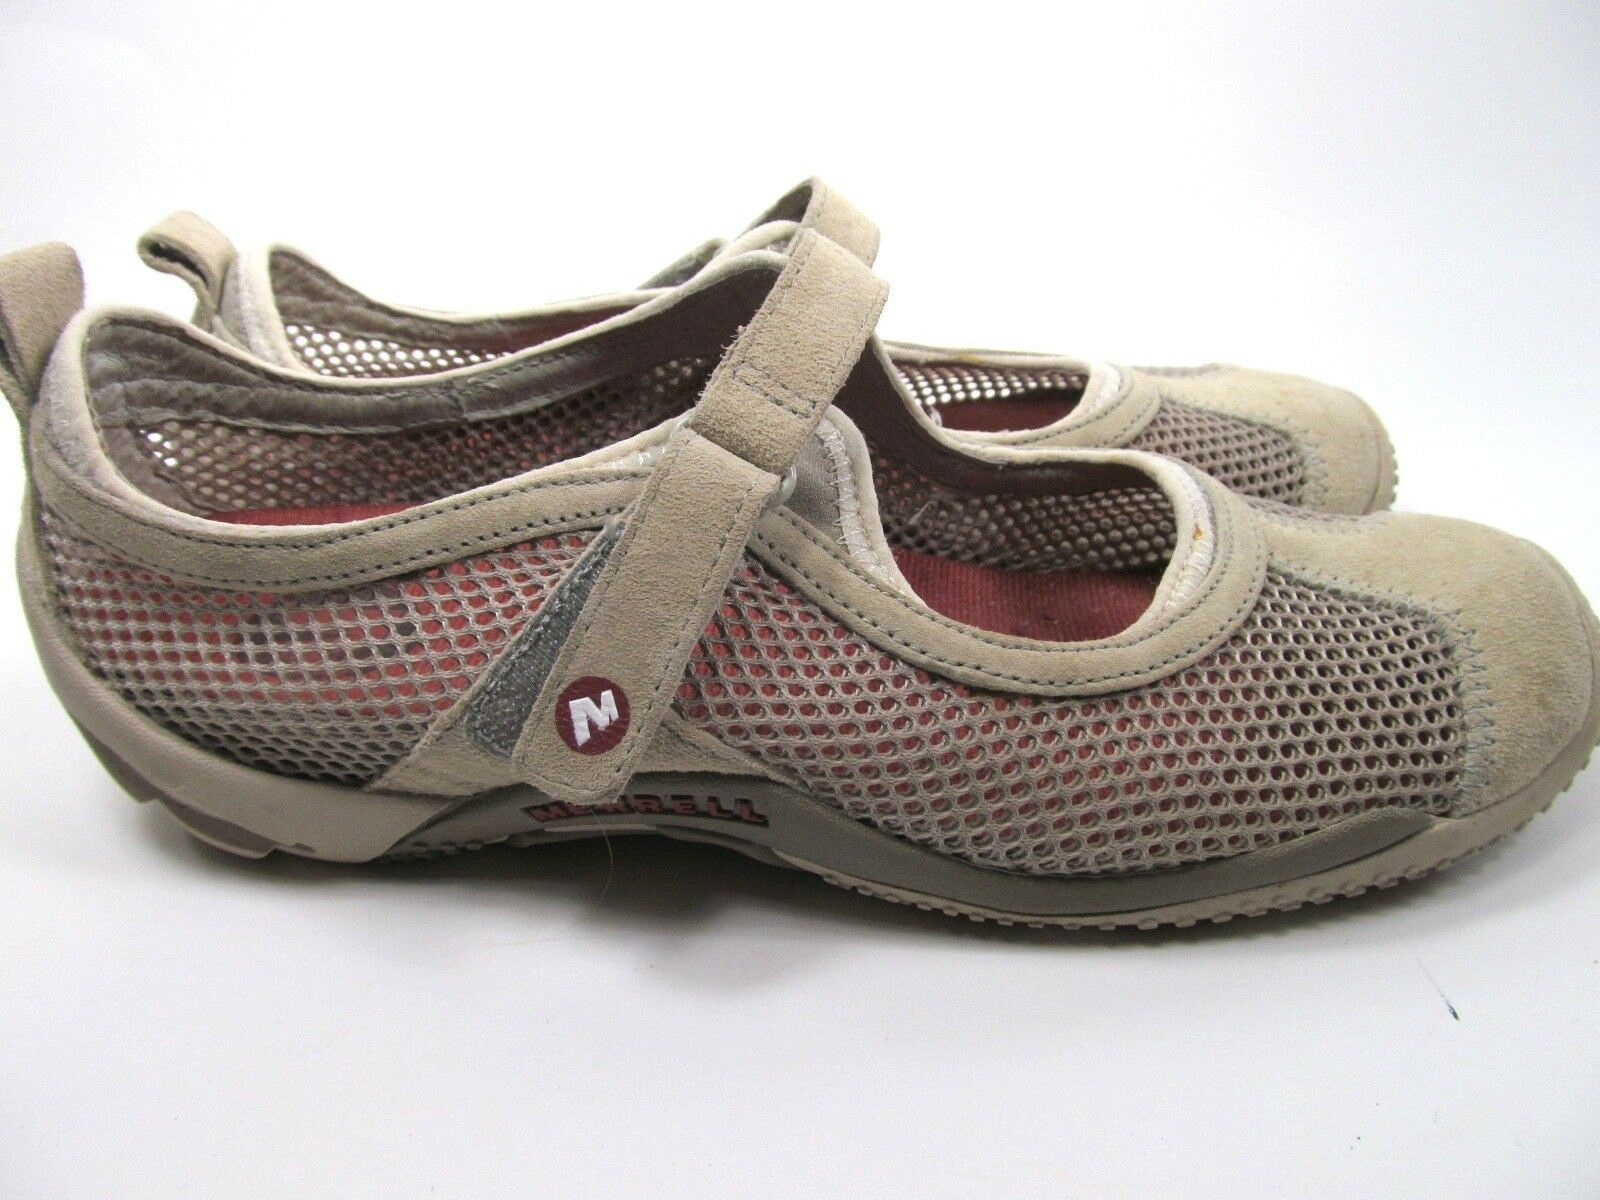 Merrell Taupe Womens Mesh Shoes Size 7.5 M Grey Suede Mary Jane Shoes image 2